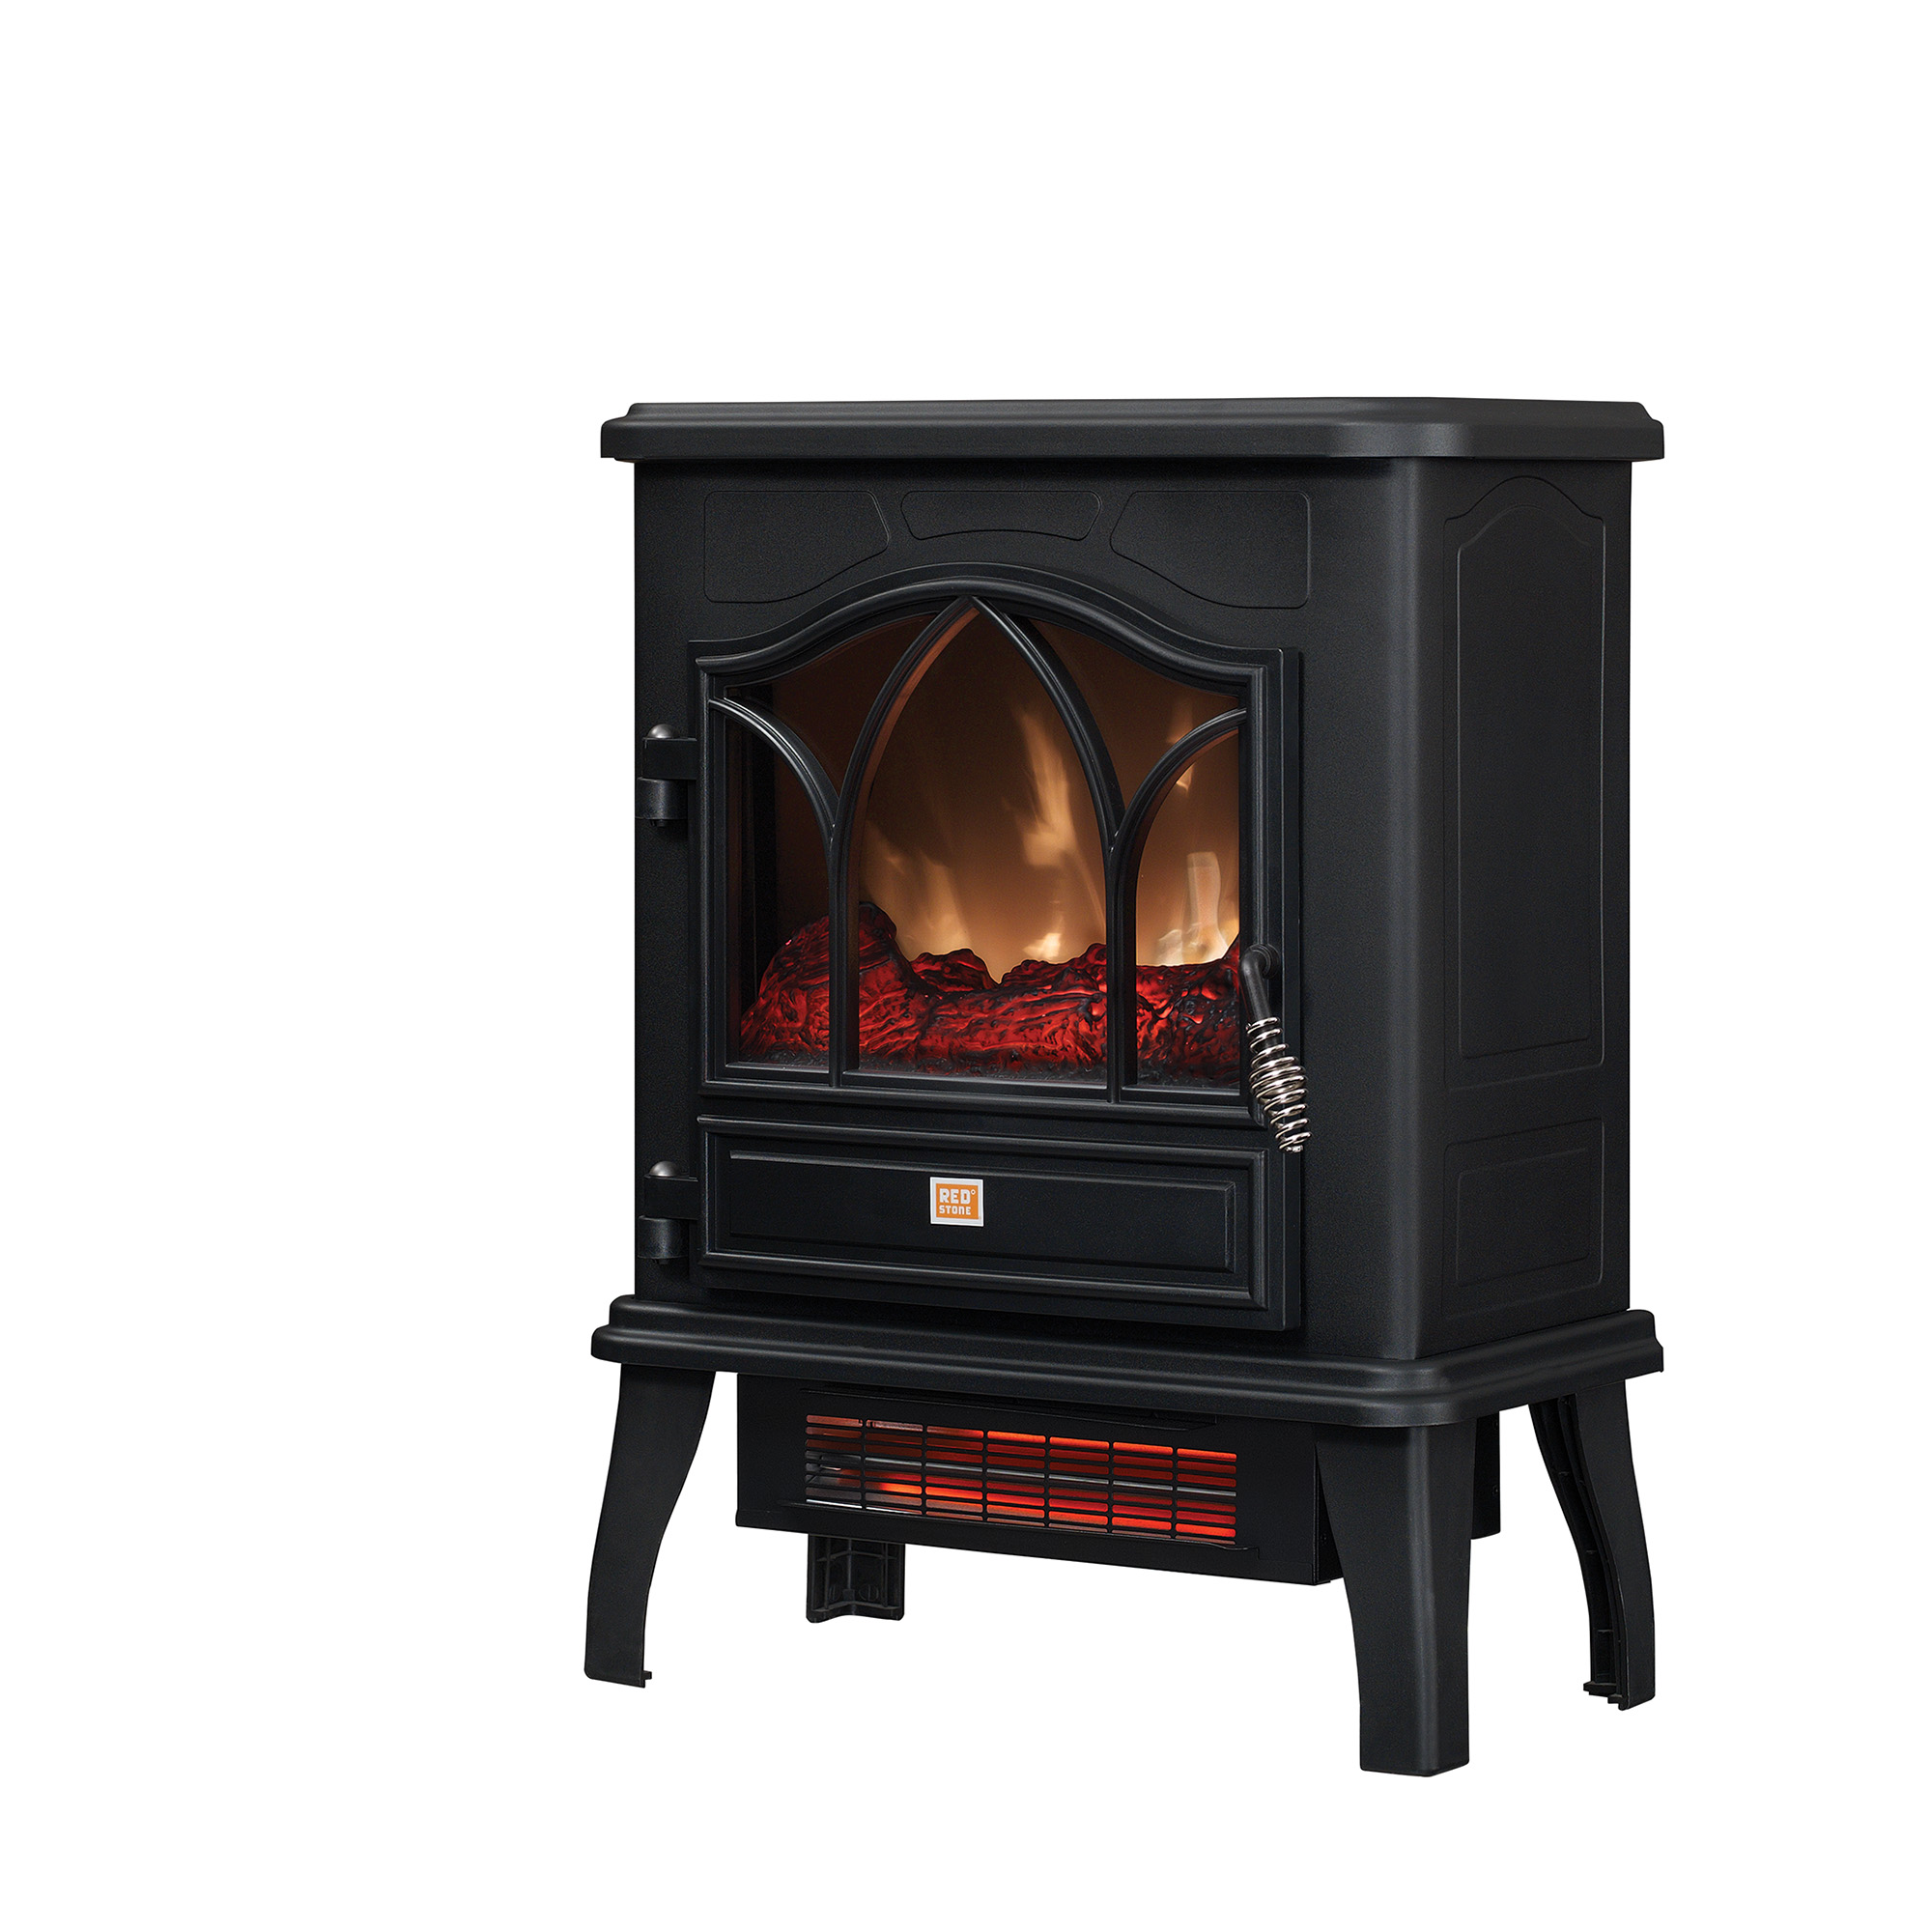 ChimneyFree Electric Metal Stove Space Heater; CFI-470-02 by Twin-Star International, Inc.